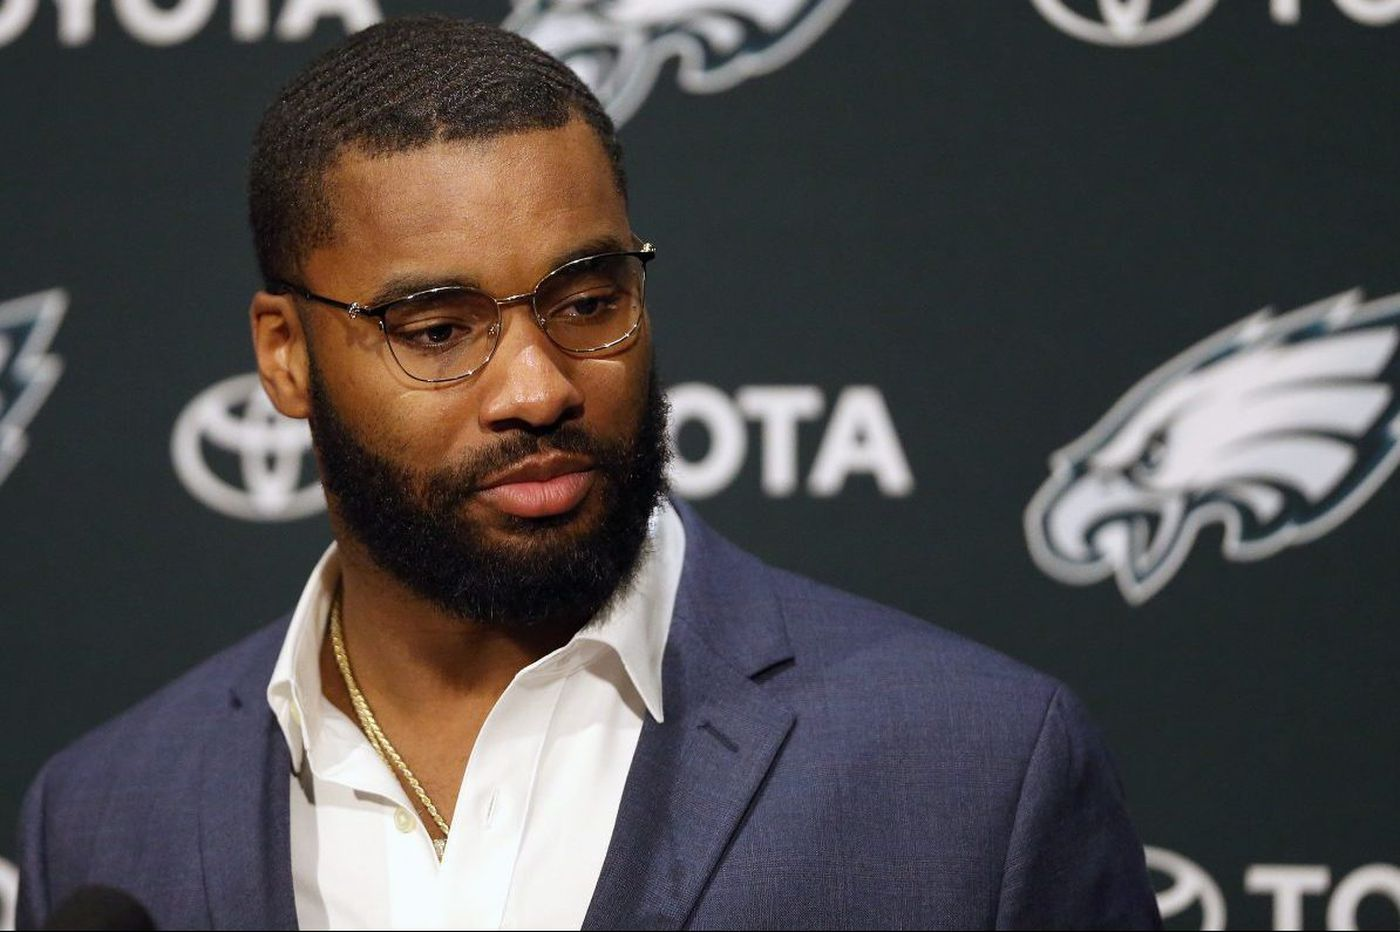 Eagles release Daryl Worley after Sunday morning arrest in South Philly